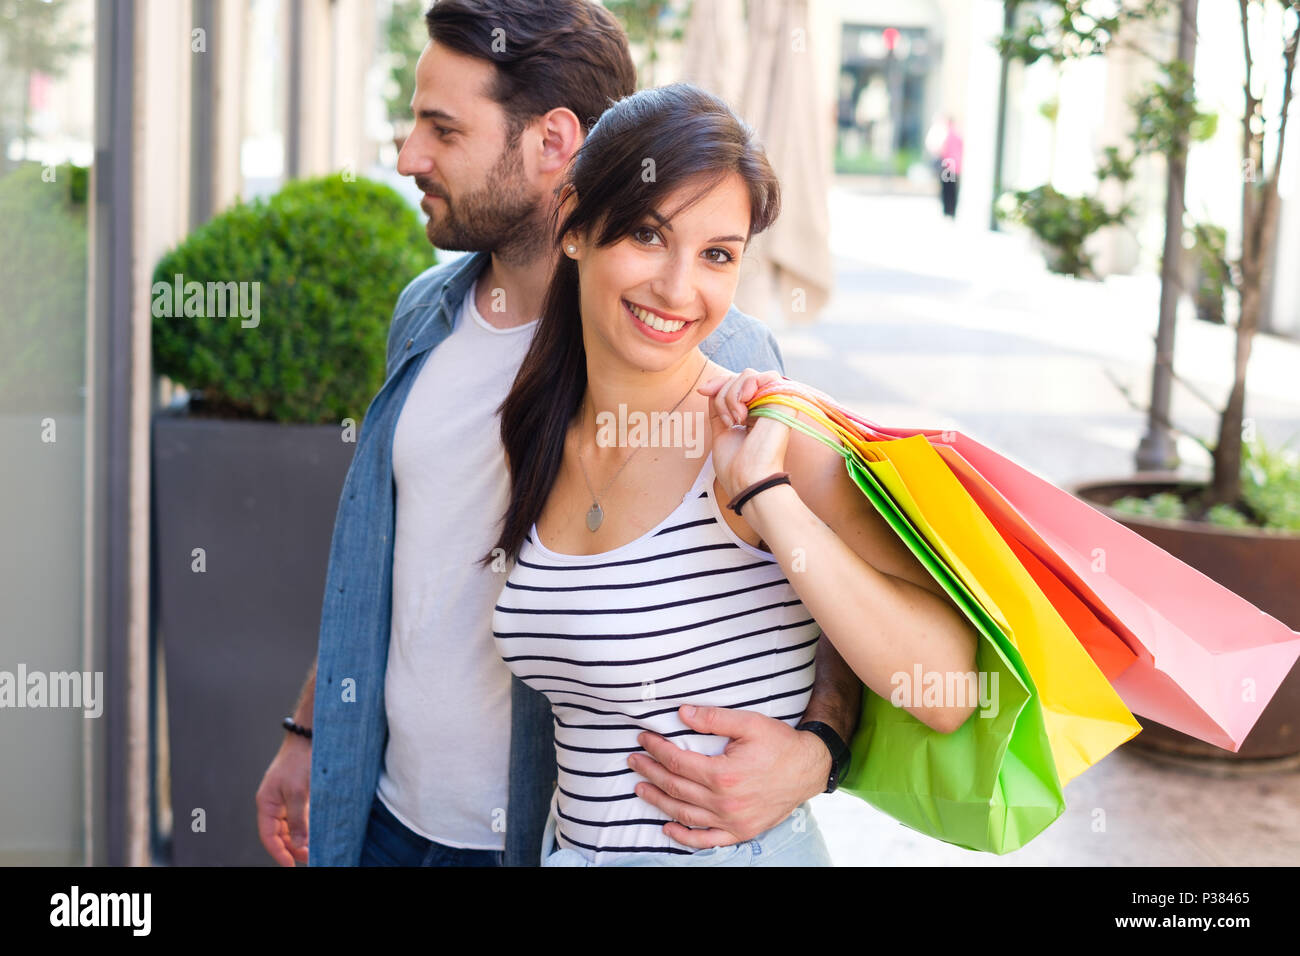 Cheerful young couple shopping together in the city having fun - Stock Image